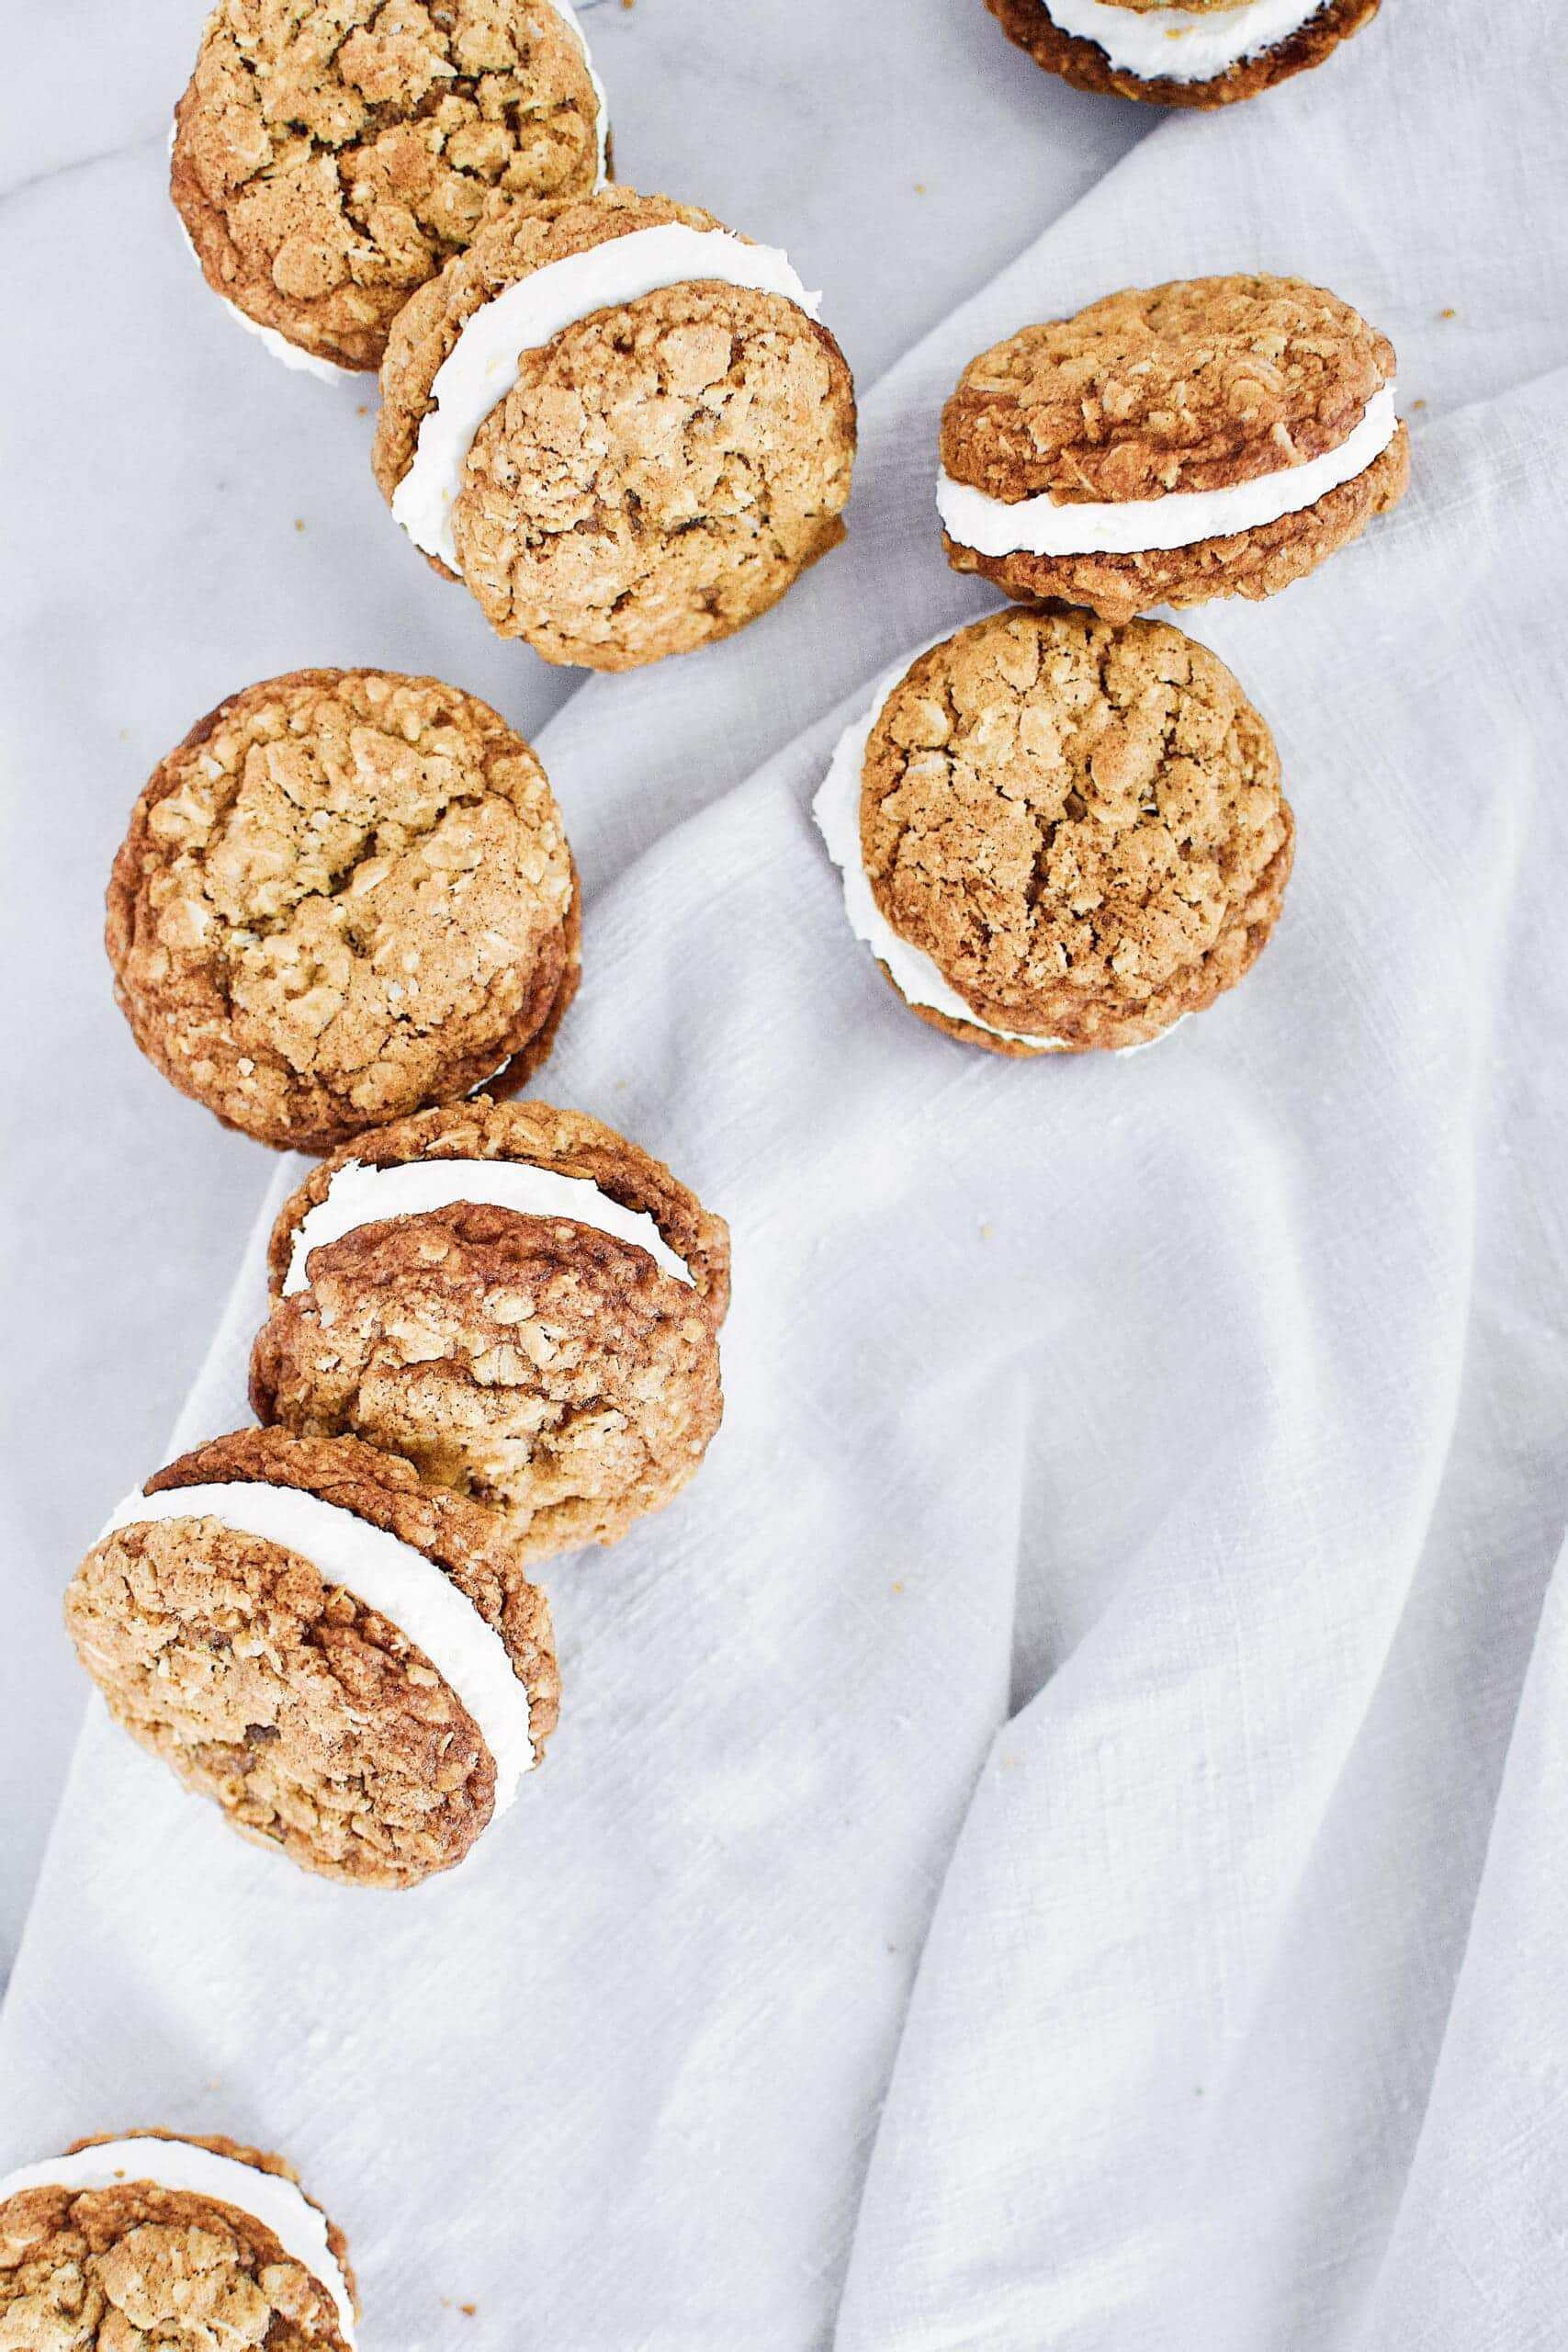 Joanna Gaines recipe for Oatmeal Cream Pies